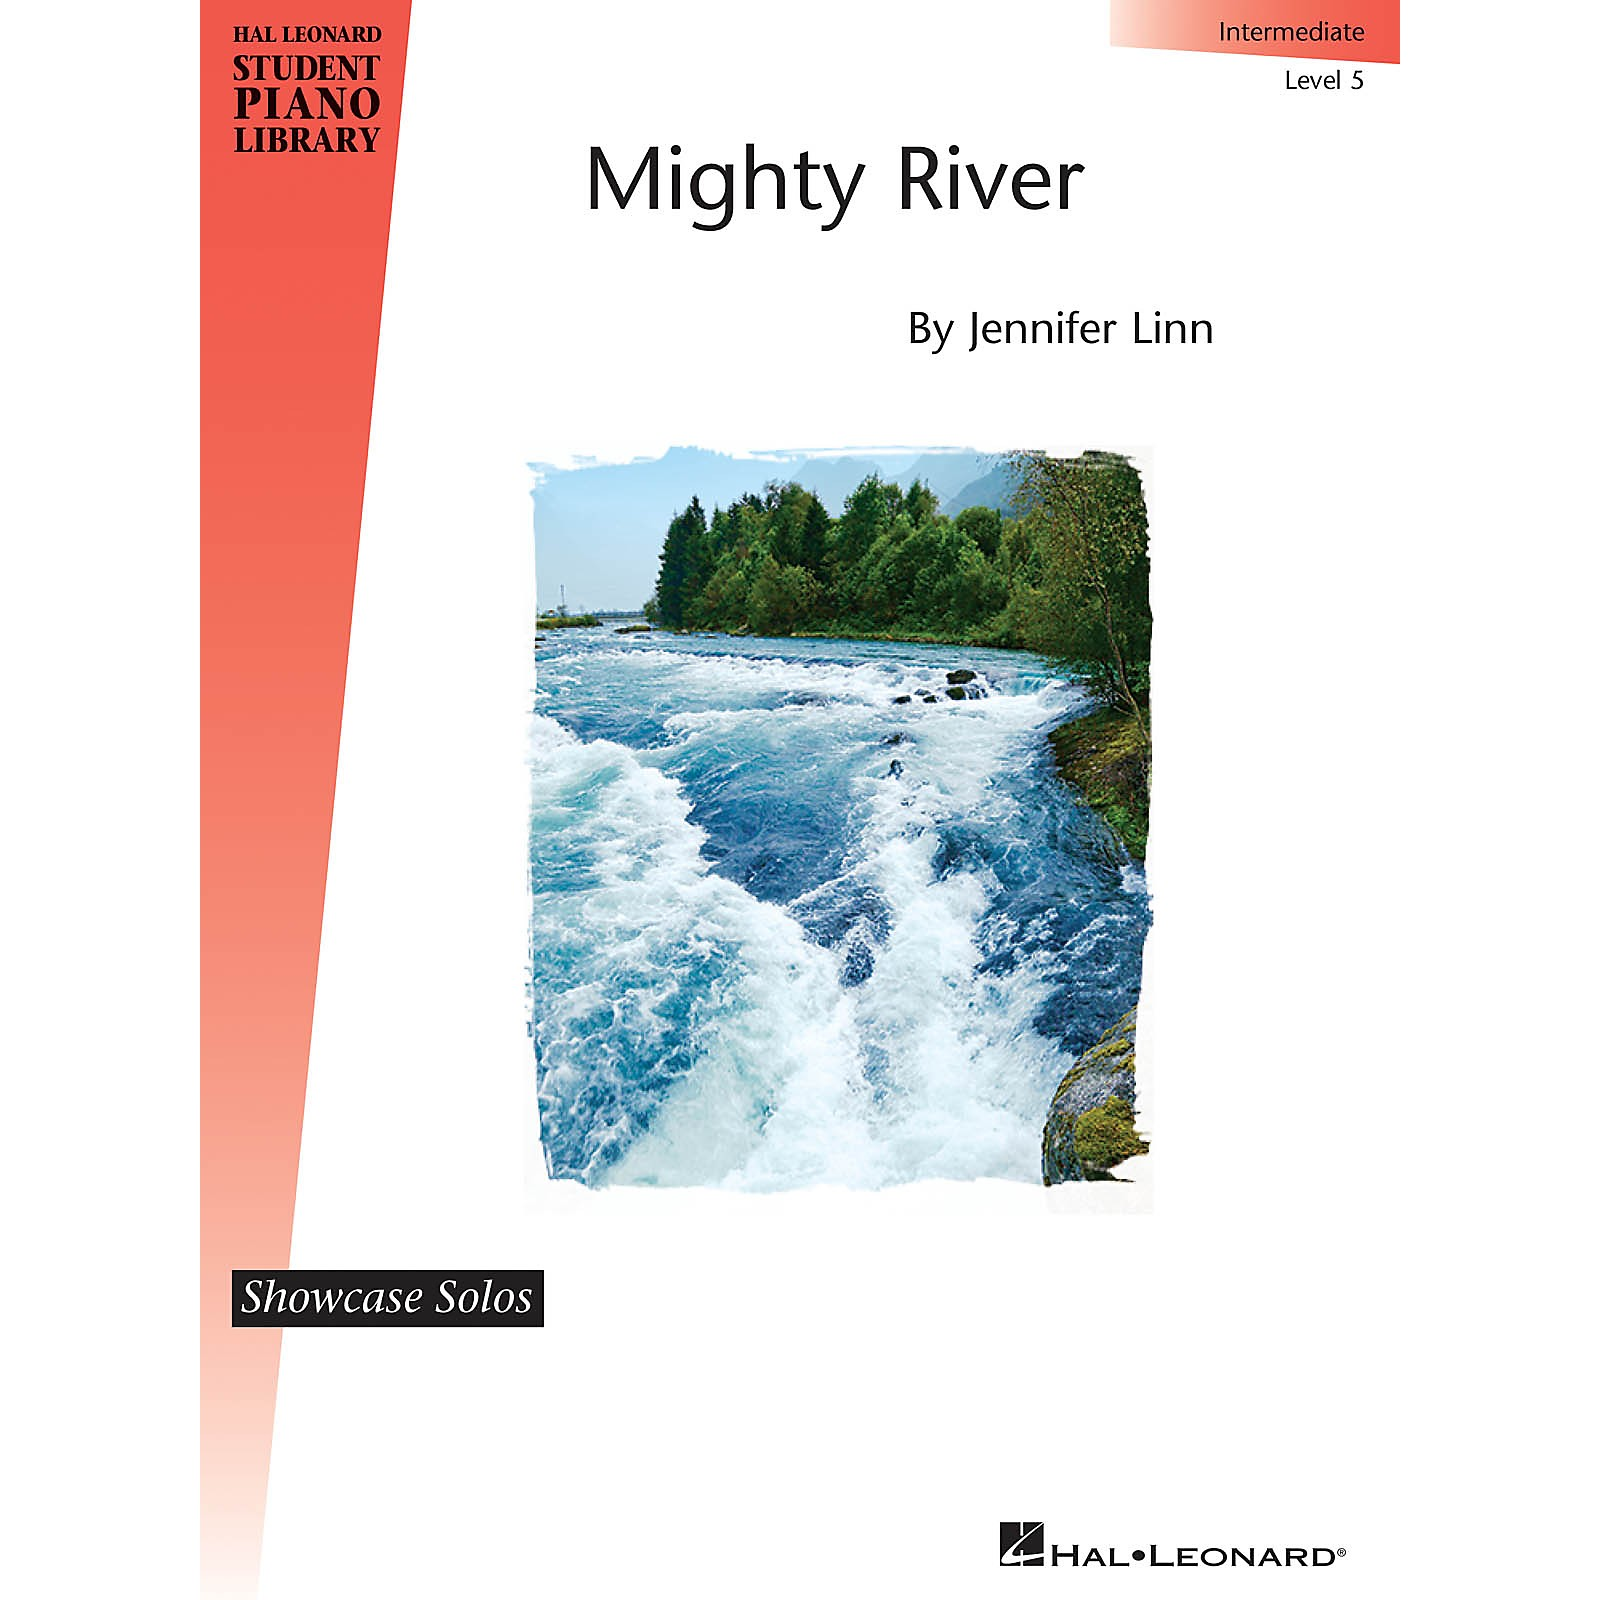 Hal Leonard Mighty River Piano Library Series by Jennifer Linn (Level Inter)